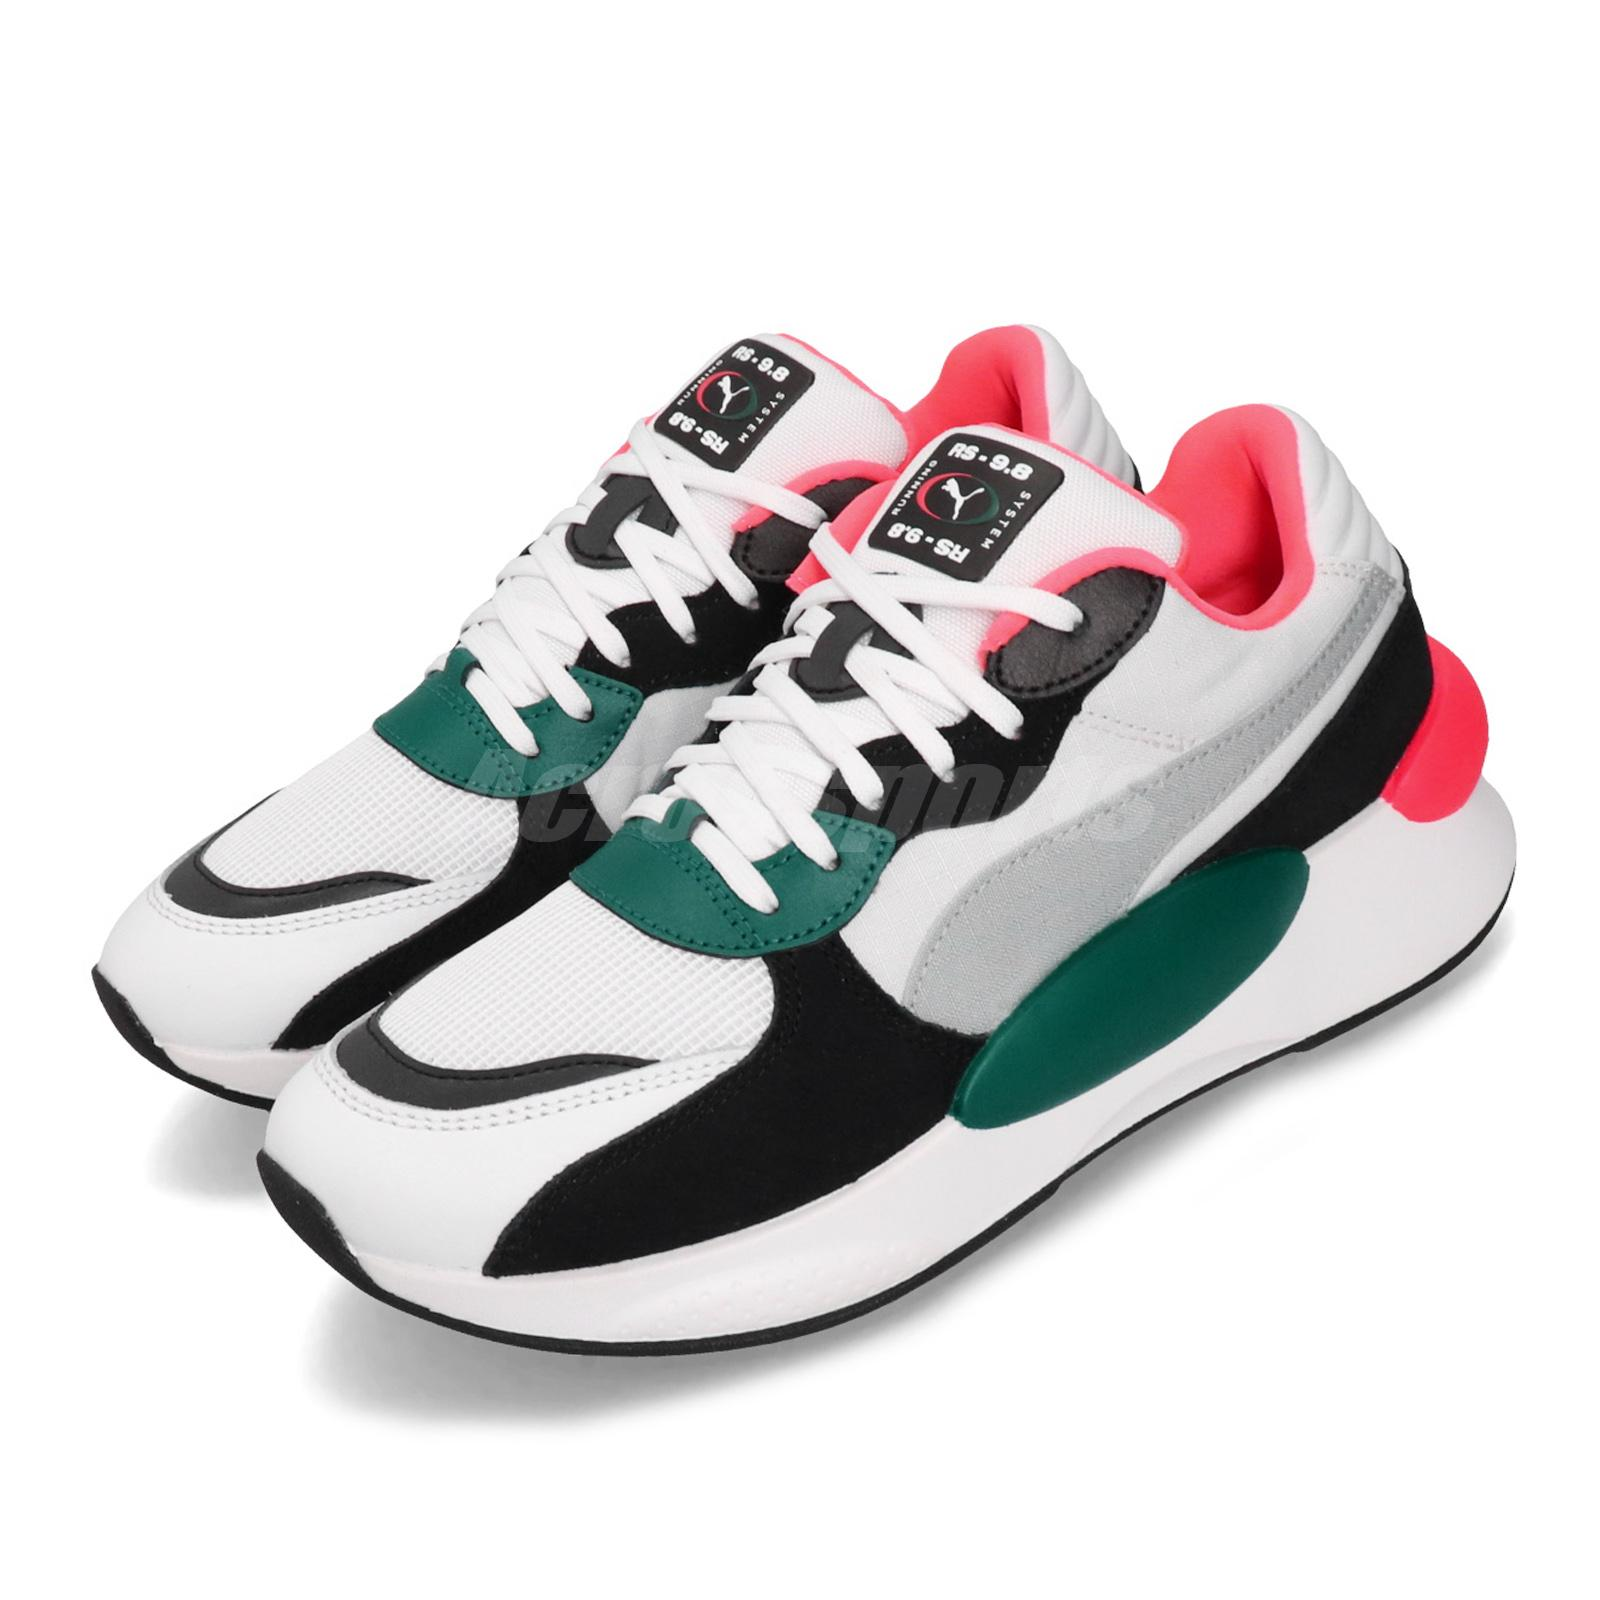 Details about Puma RS 9.8 Space White Teal Green Pink Mens Womens Running  Shoes 370230-04